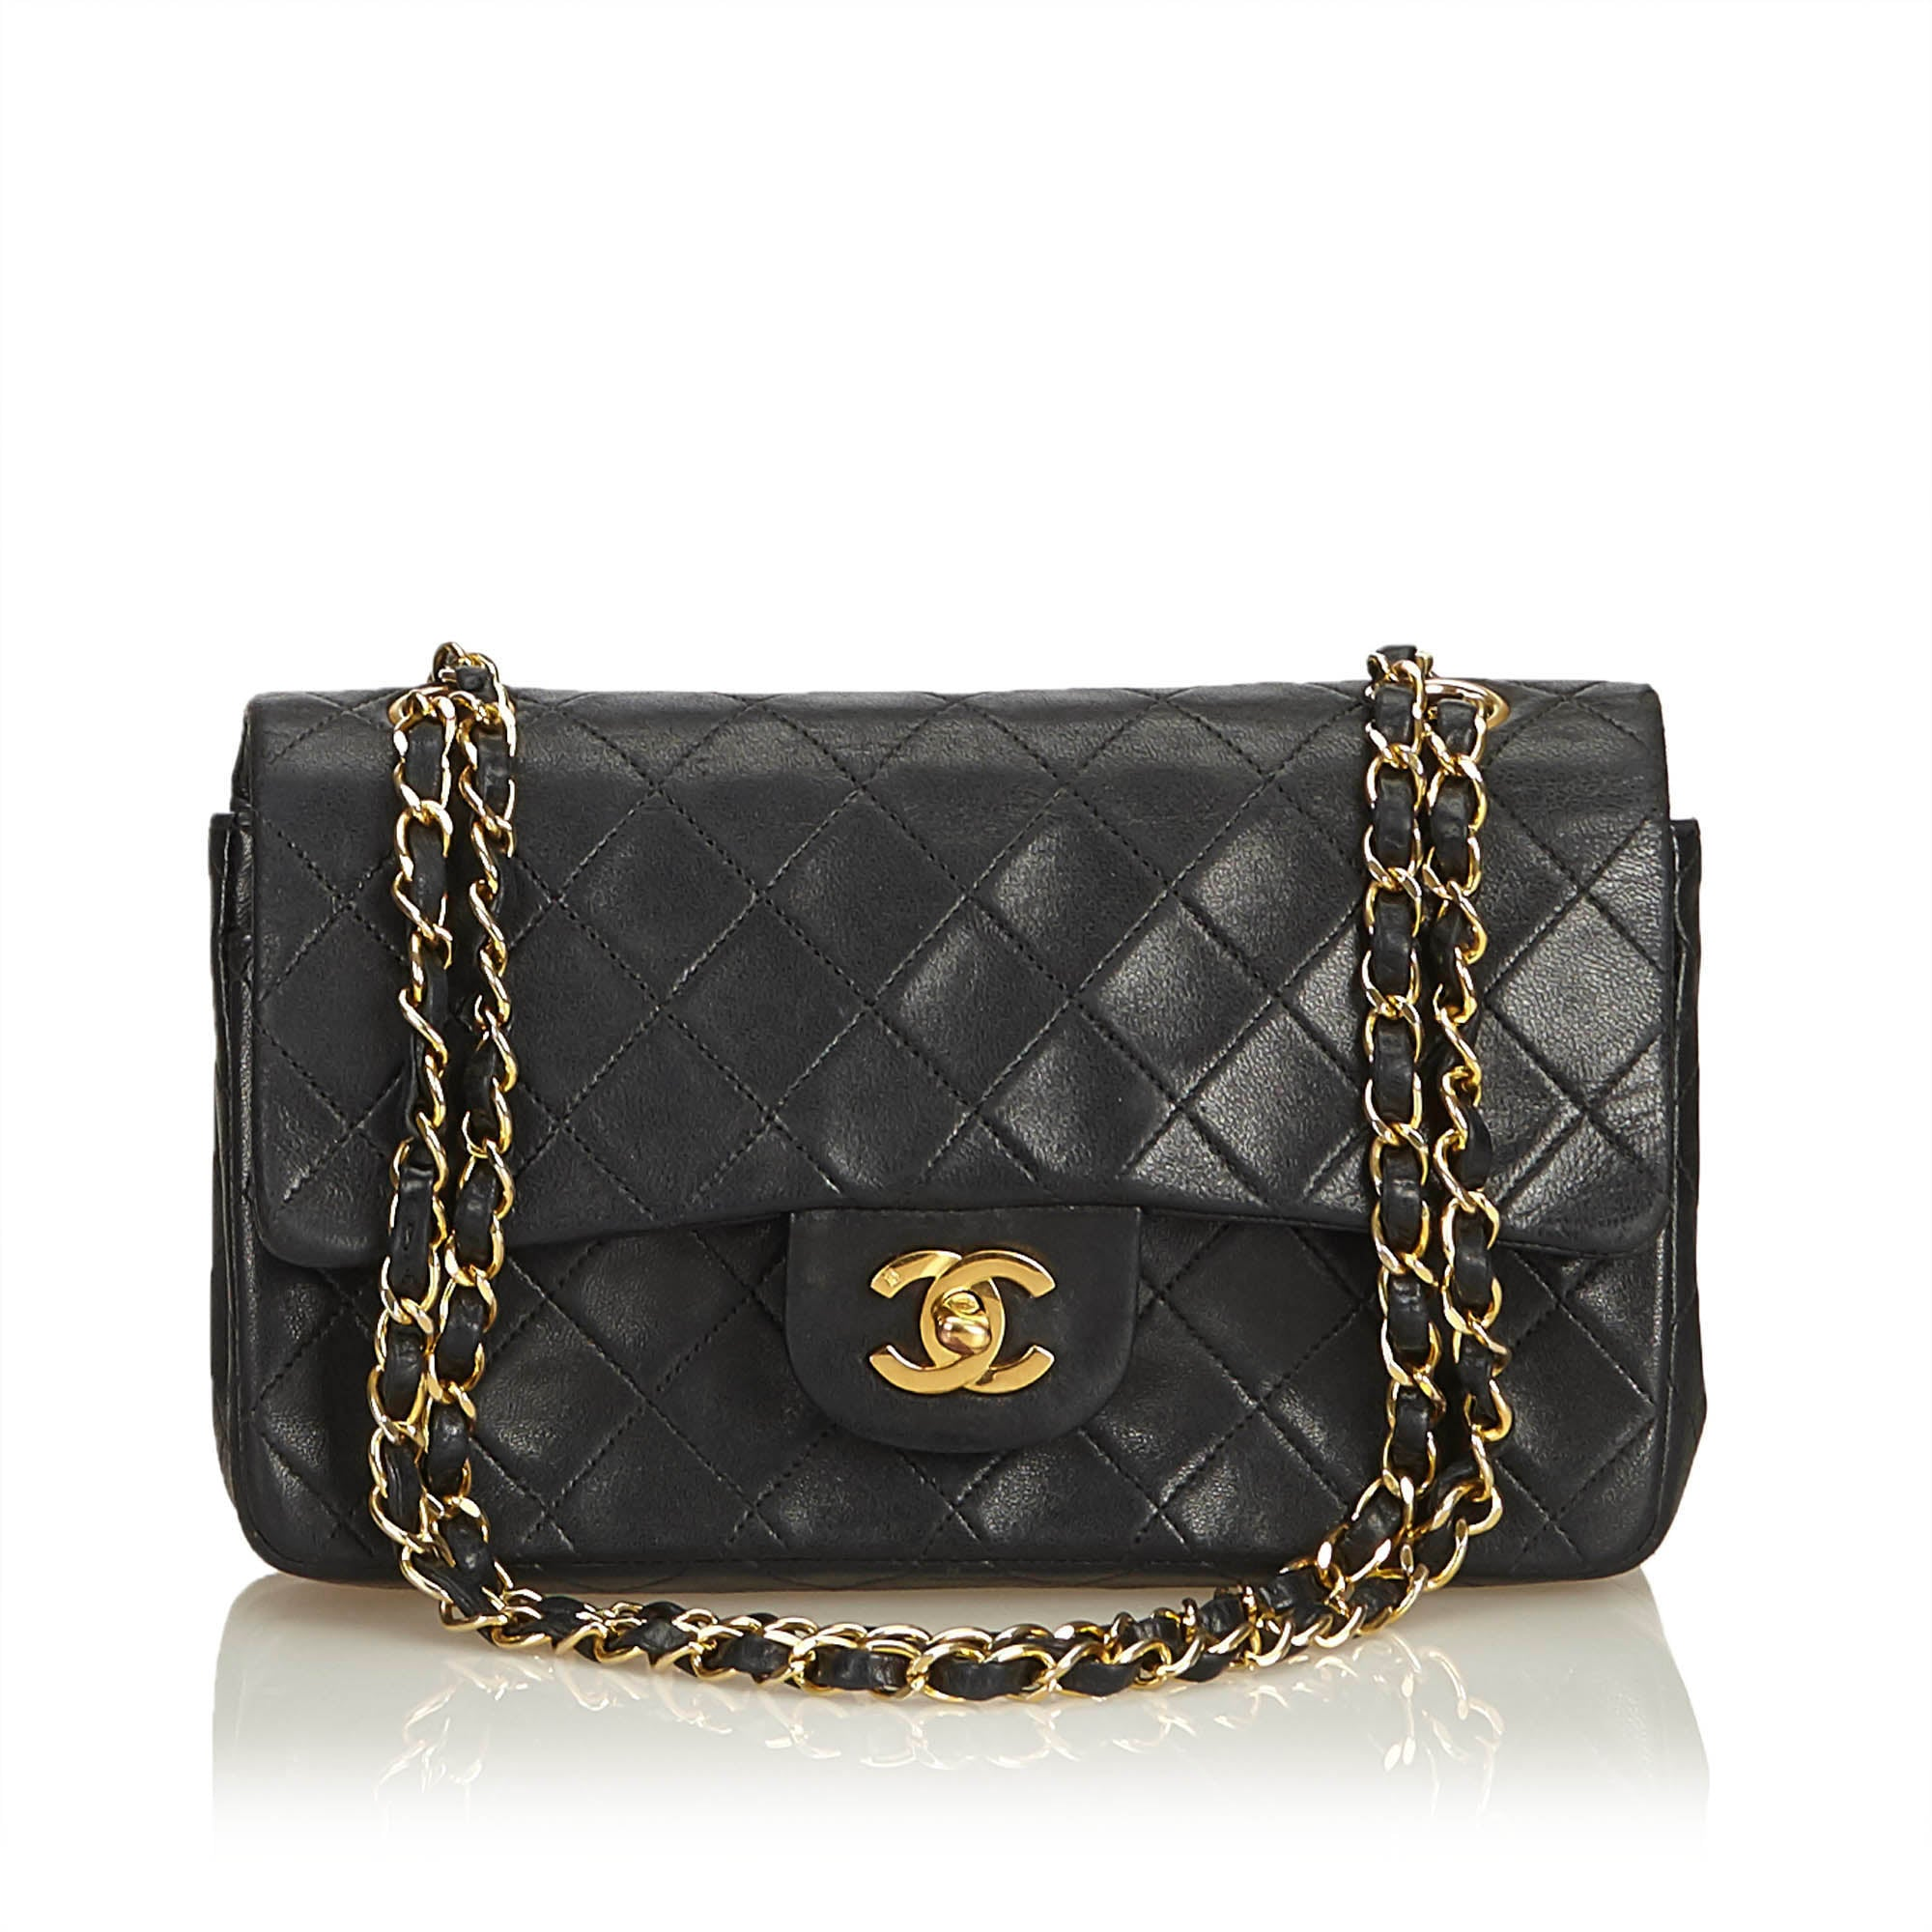 Chanel Double Flap Bag - Iconics Preloved Luxury